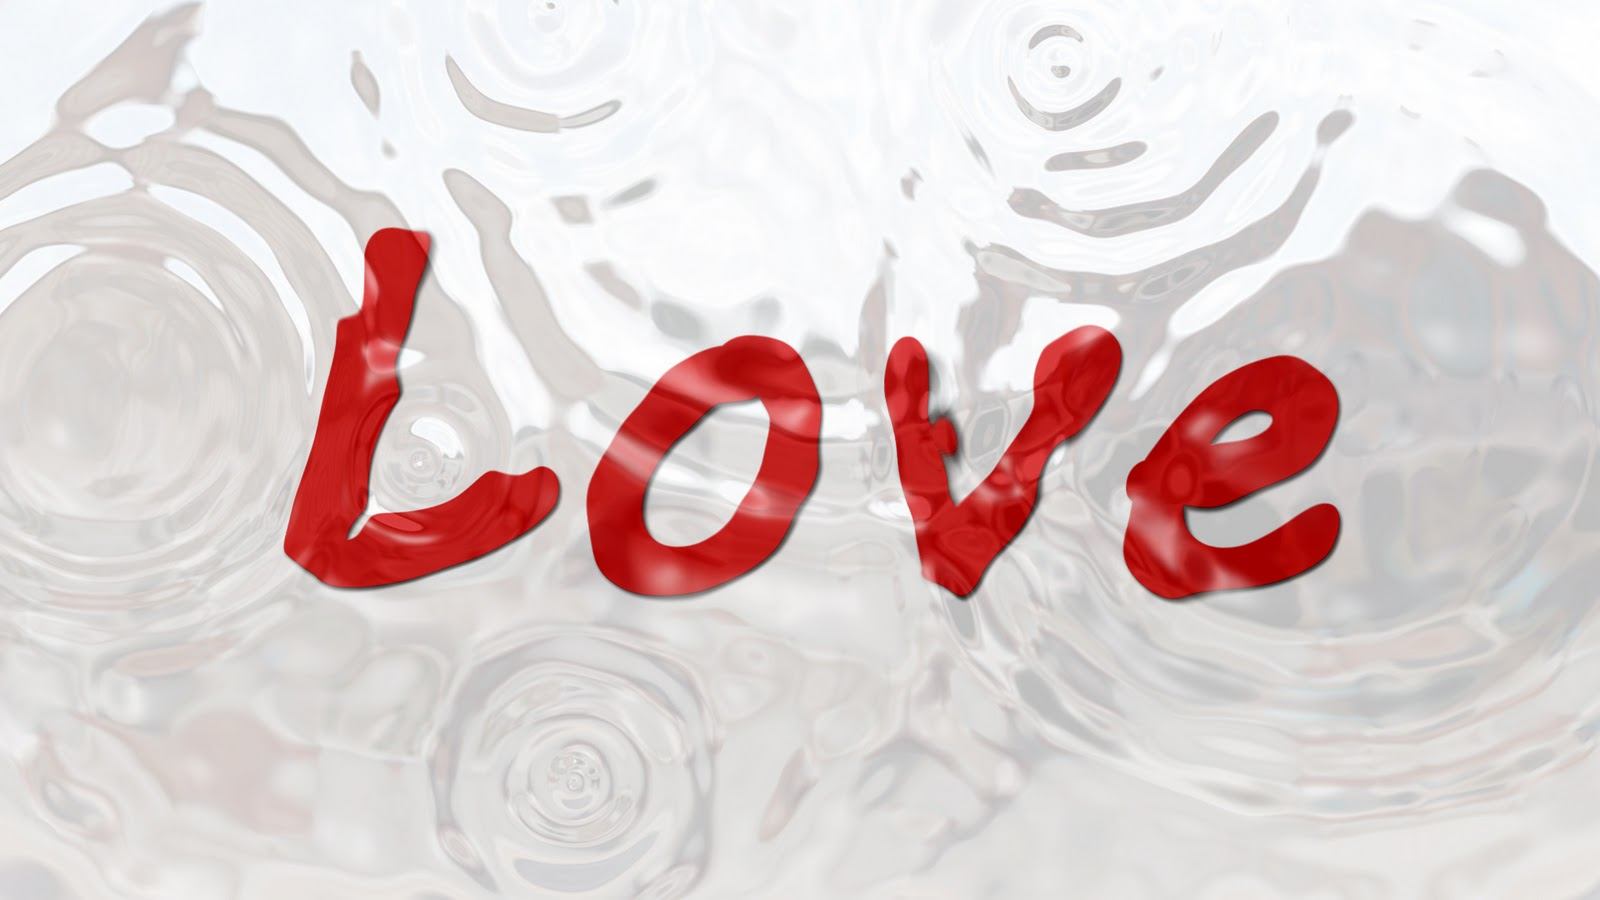 Love Wallpapers come : Desktop Wallpapers,Animals Wallpapers,Flowers Wallpapers ...